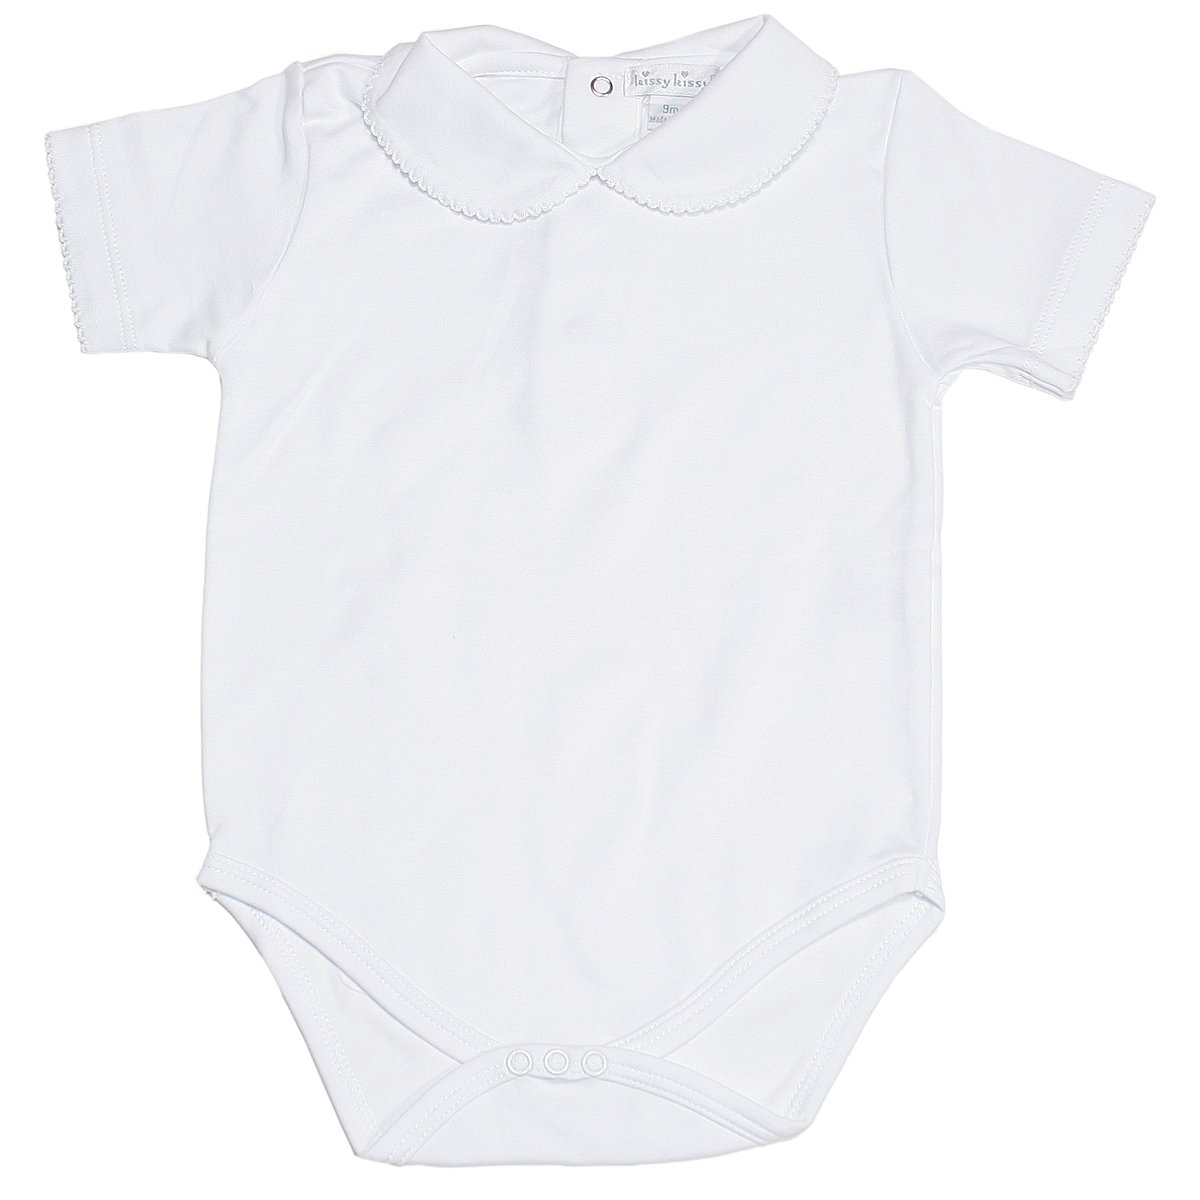 Kissy Kissy Baby Basic Short Sleeve Collared Bodysuit with Bebe Collar